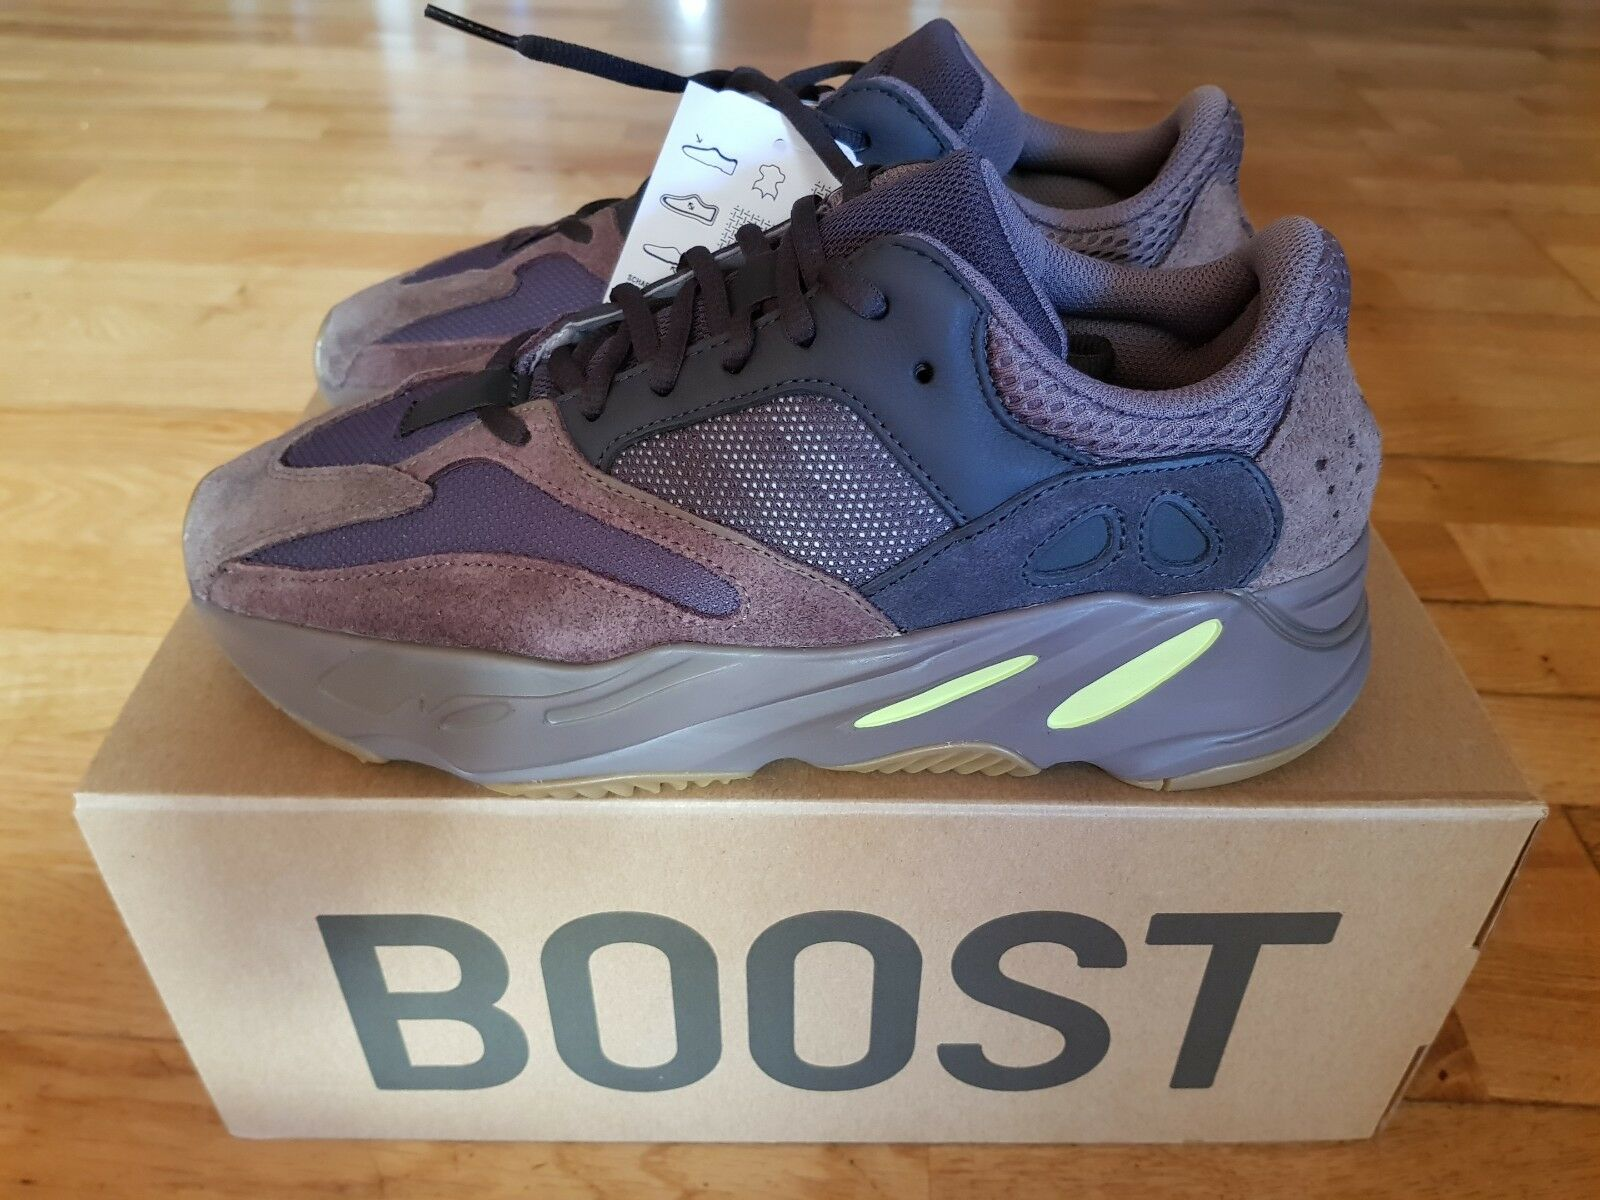 Adidas Yeezy Boost 700 Mauve, US 9, Brand New, DS